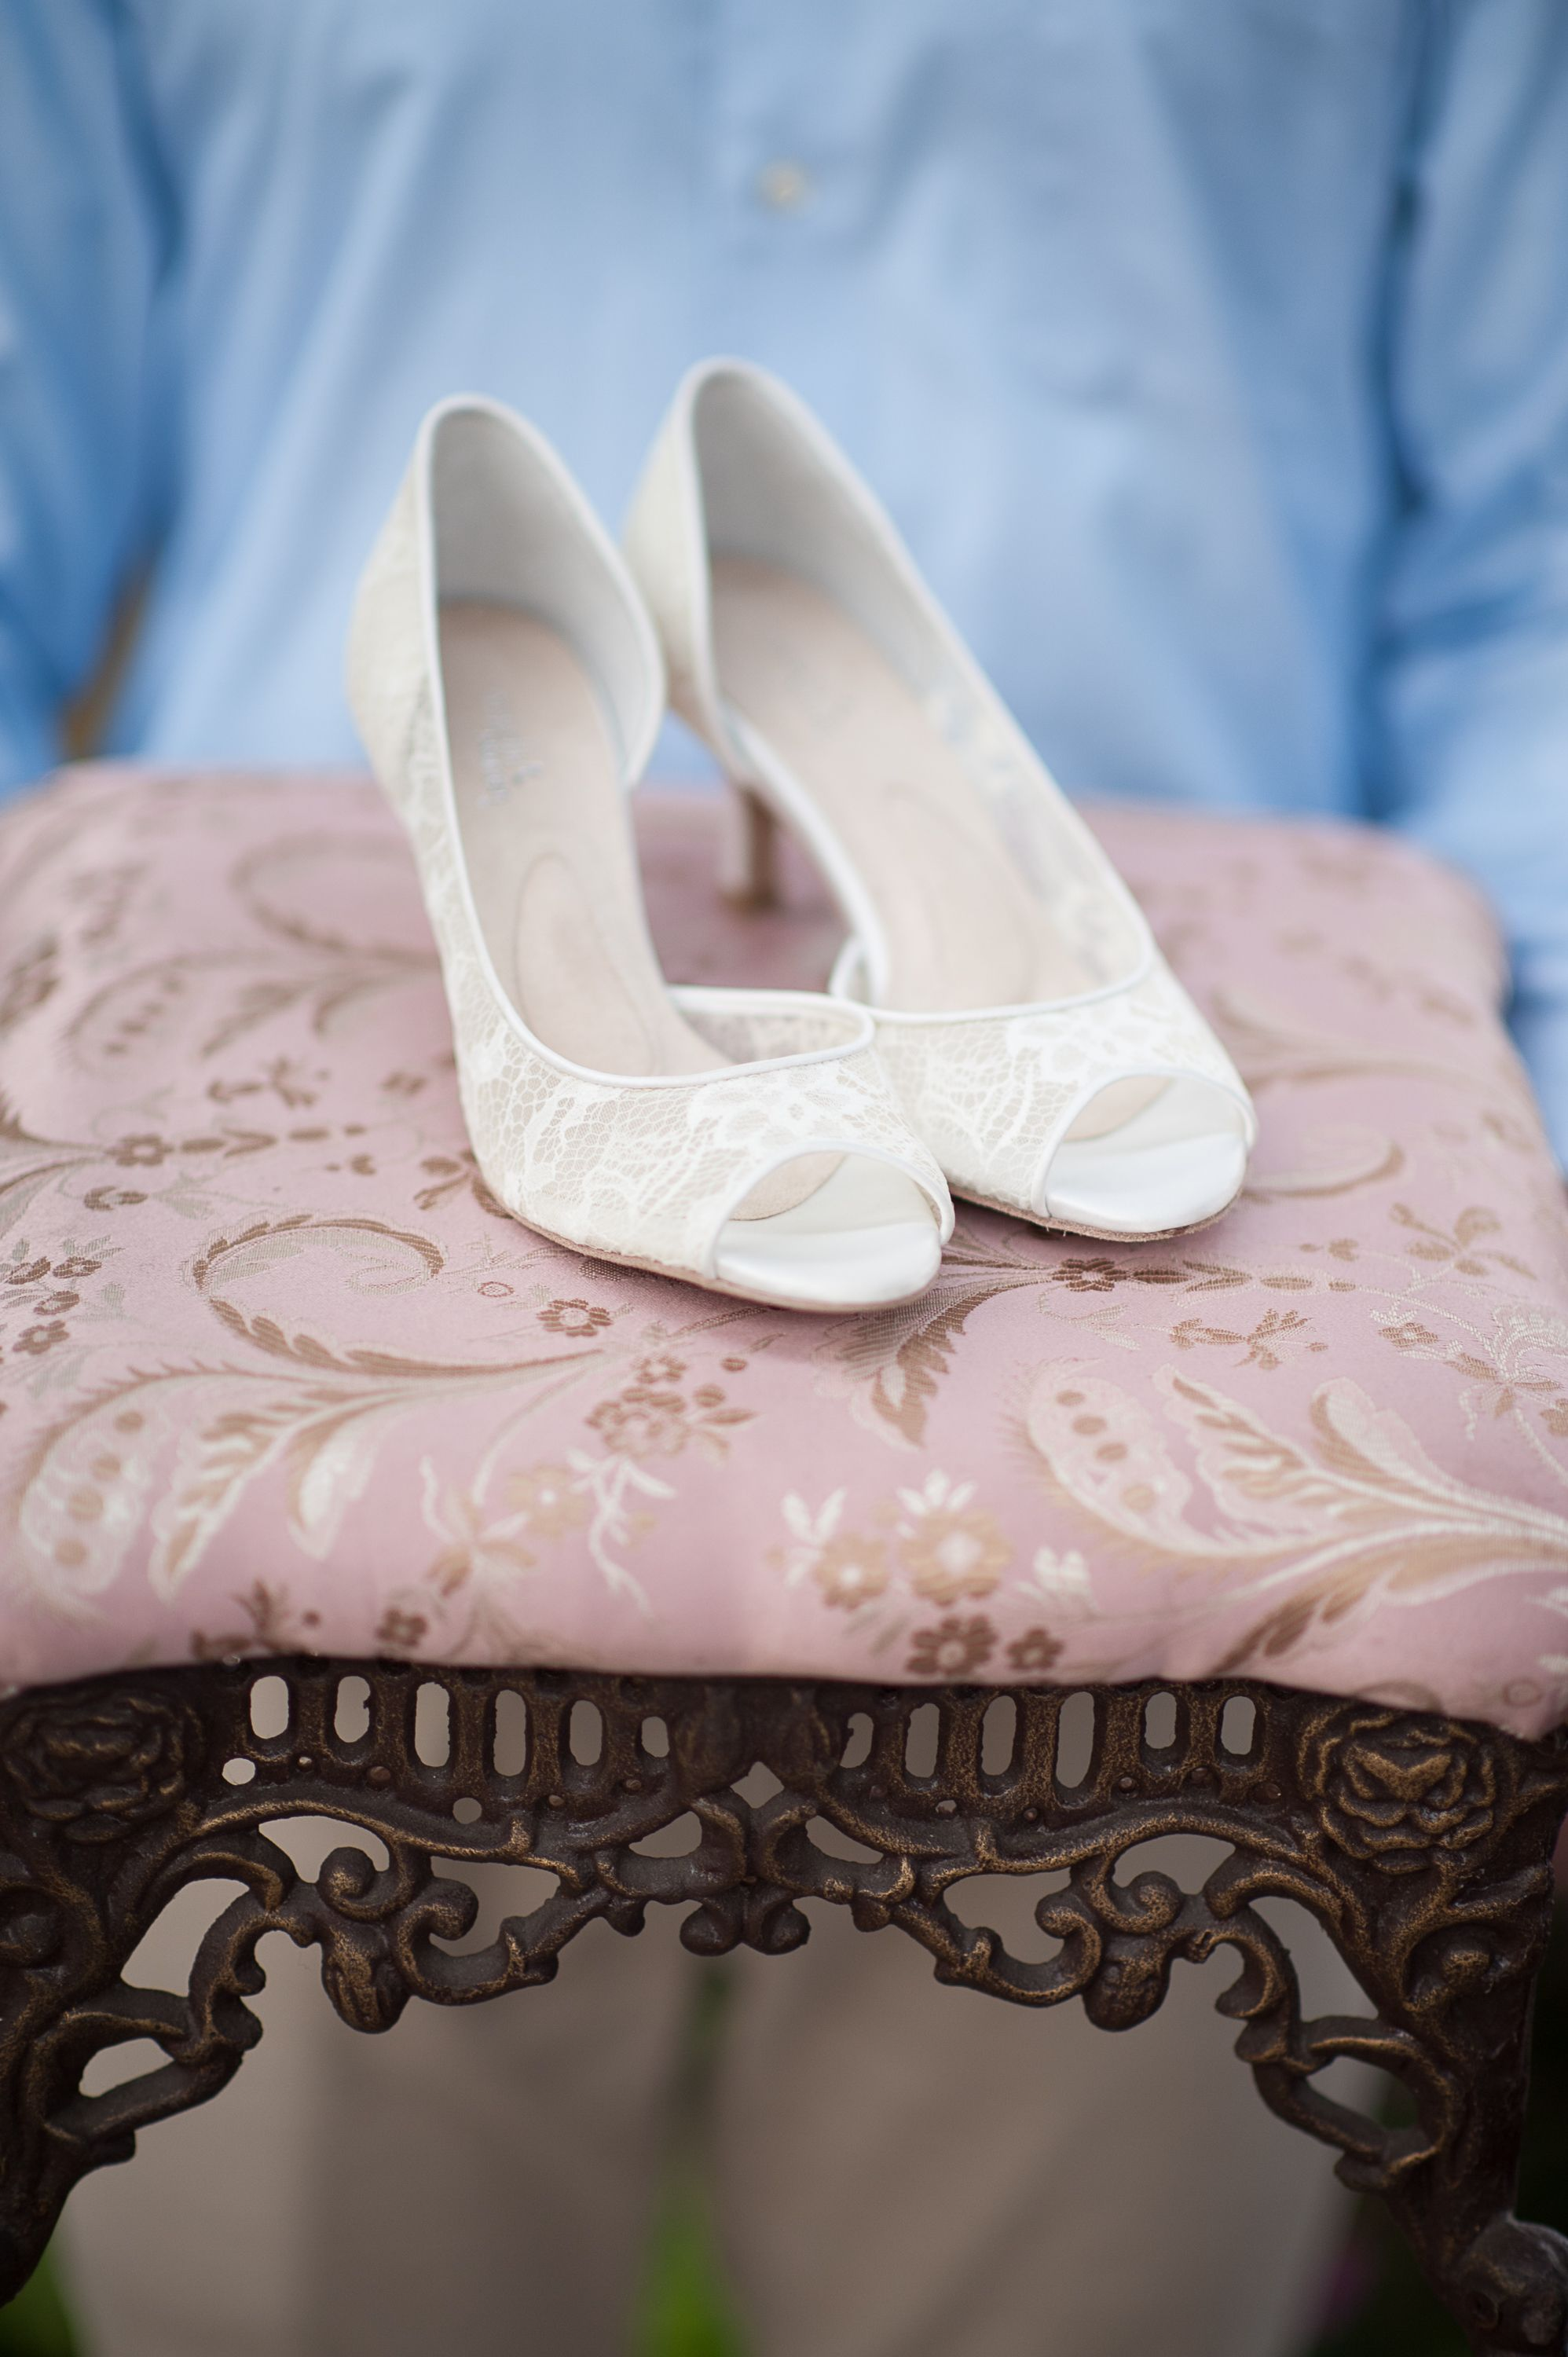 comfortable but finally big topic theyre comforter img they re gold found shoes my too wedding